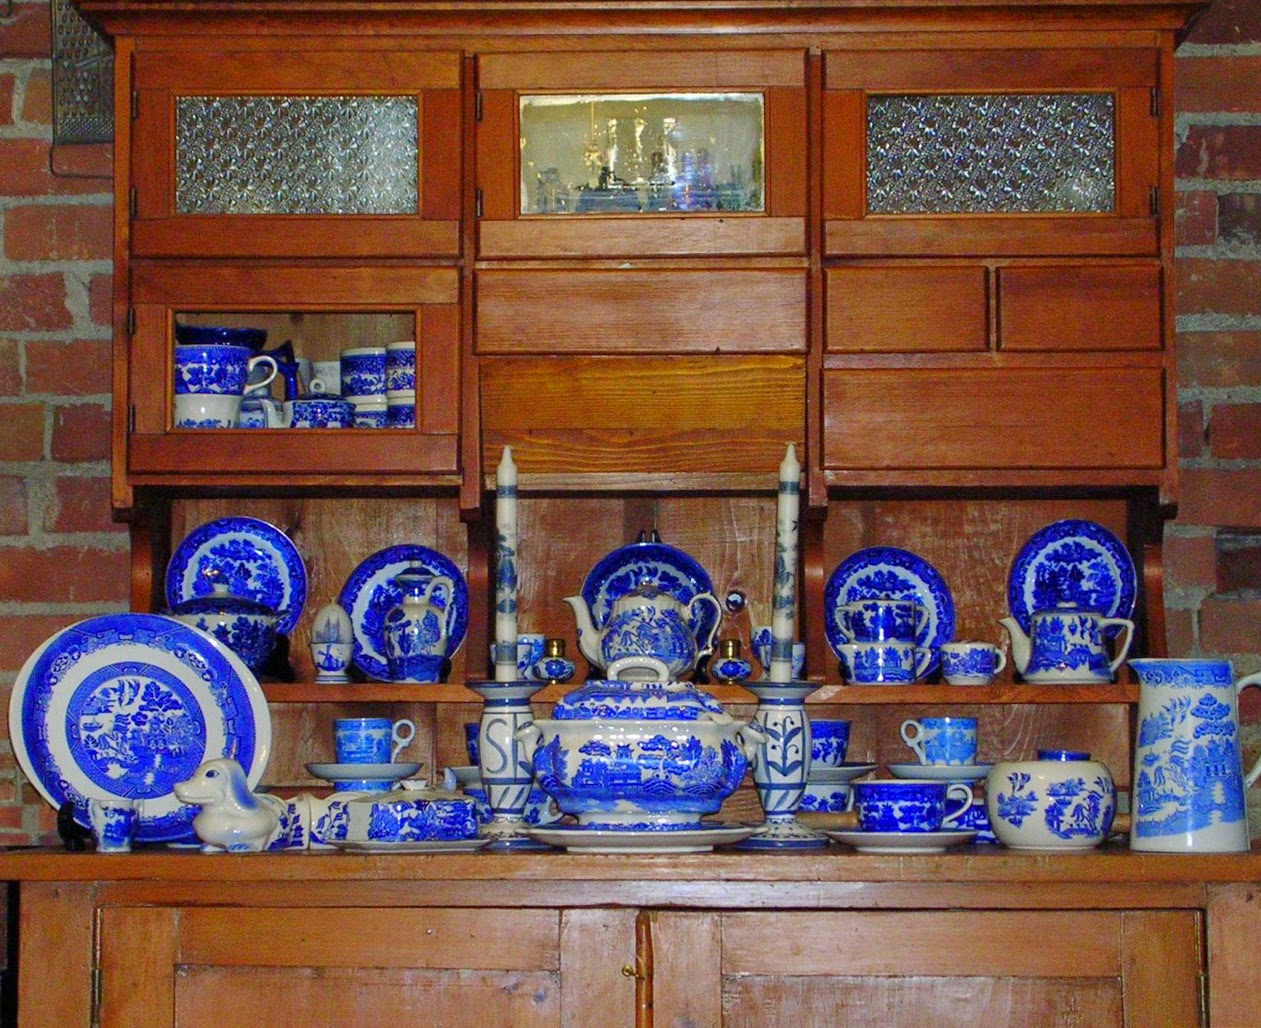 A display of vintage blue willow china in an antique kitchen cabinet.